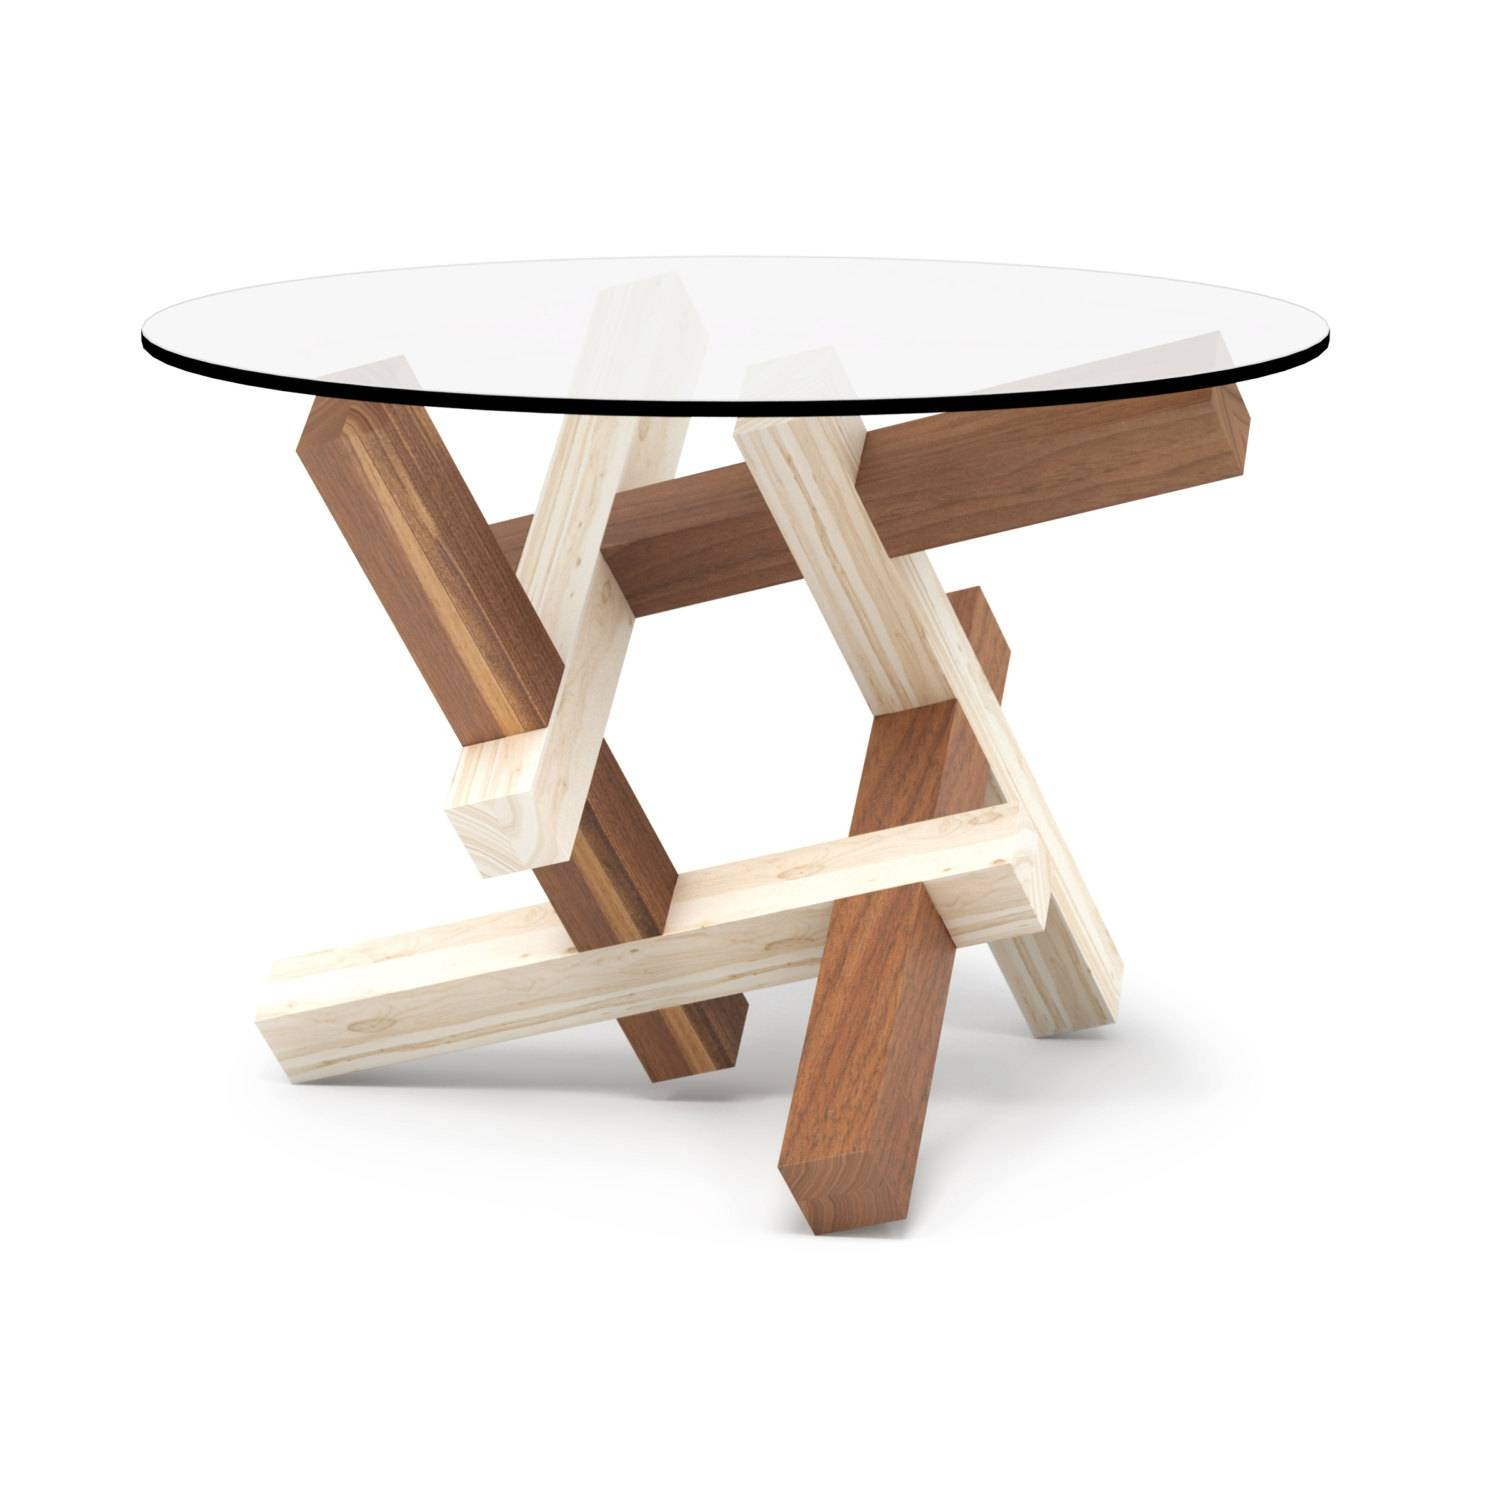 2X3 Round Wooden Coffee Table Puzzle Round Glass Table with Puzzle Coffee Tables (Image 3 of 30)